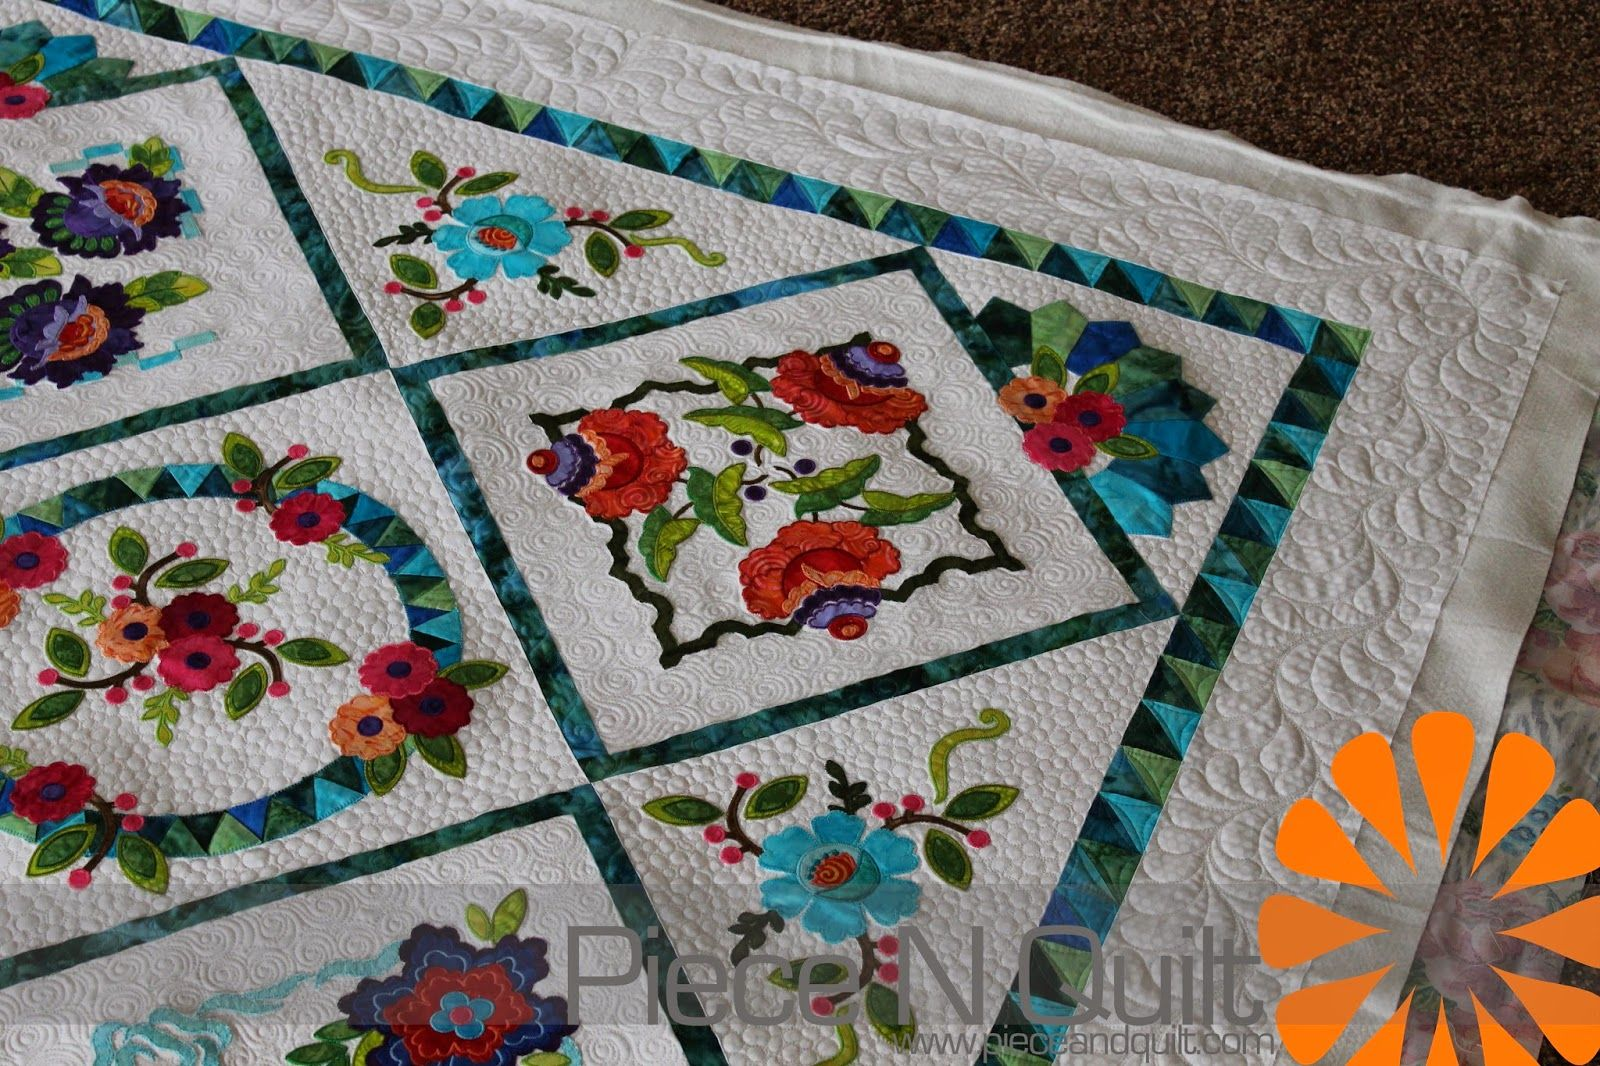 machine embroidered quilts | Last week I machine quilted this ... : embroidery quilting machine - Adamdwight.com